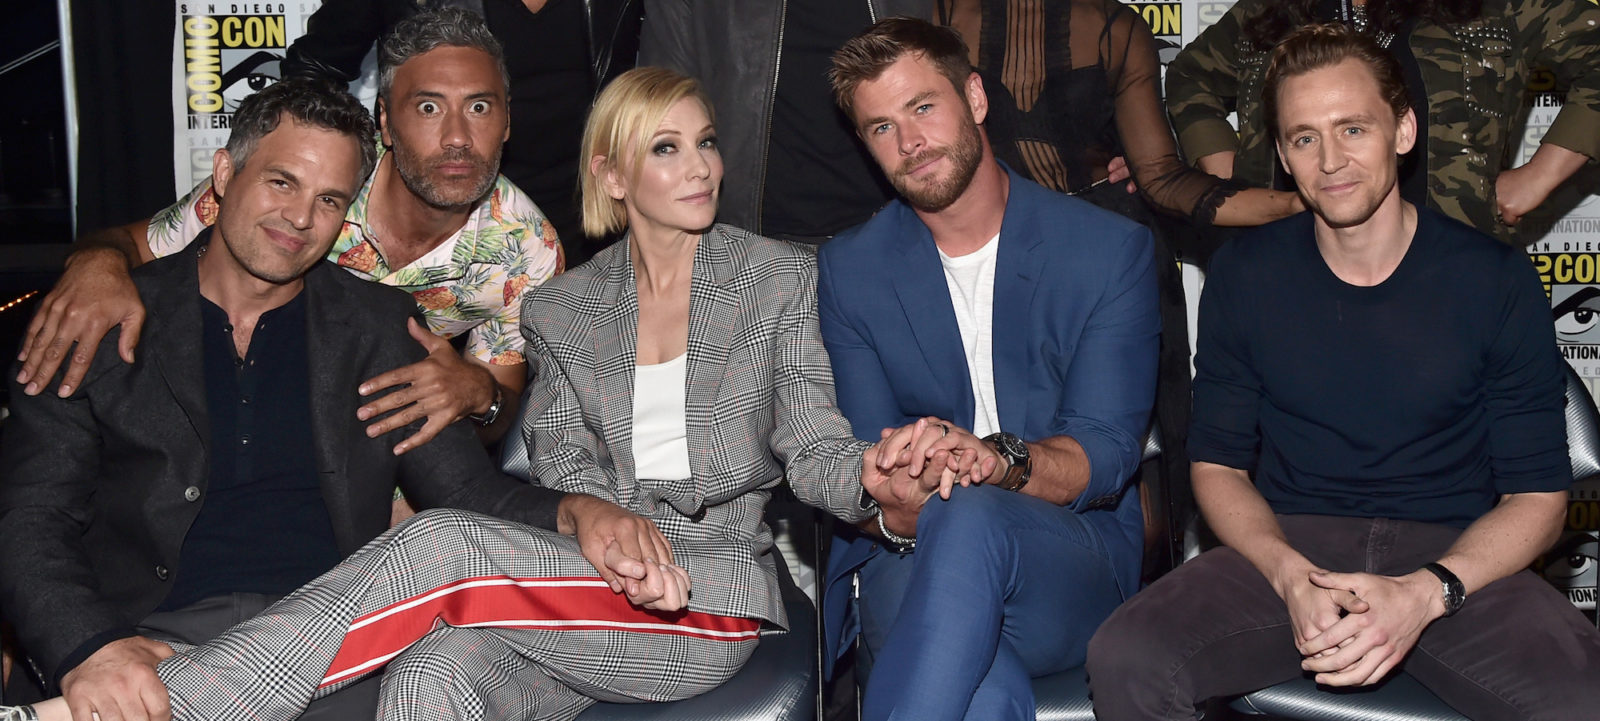 Mark Ruffalo, director Taika Waititi, actors Cate Blanchett, Chris Hemsworth and Tom Hiddleston from Marvel Studios' 'Thor: Ragnarok' at the San Diego Comic-Con International 2017 Marvel Studios Panel in Hall H on July 22, 2017 in San Diego, California.